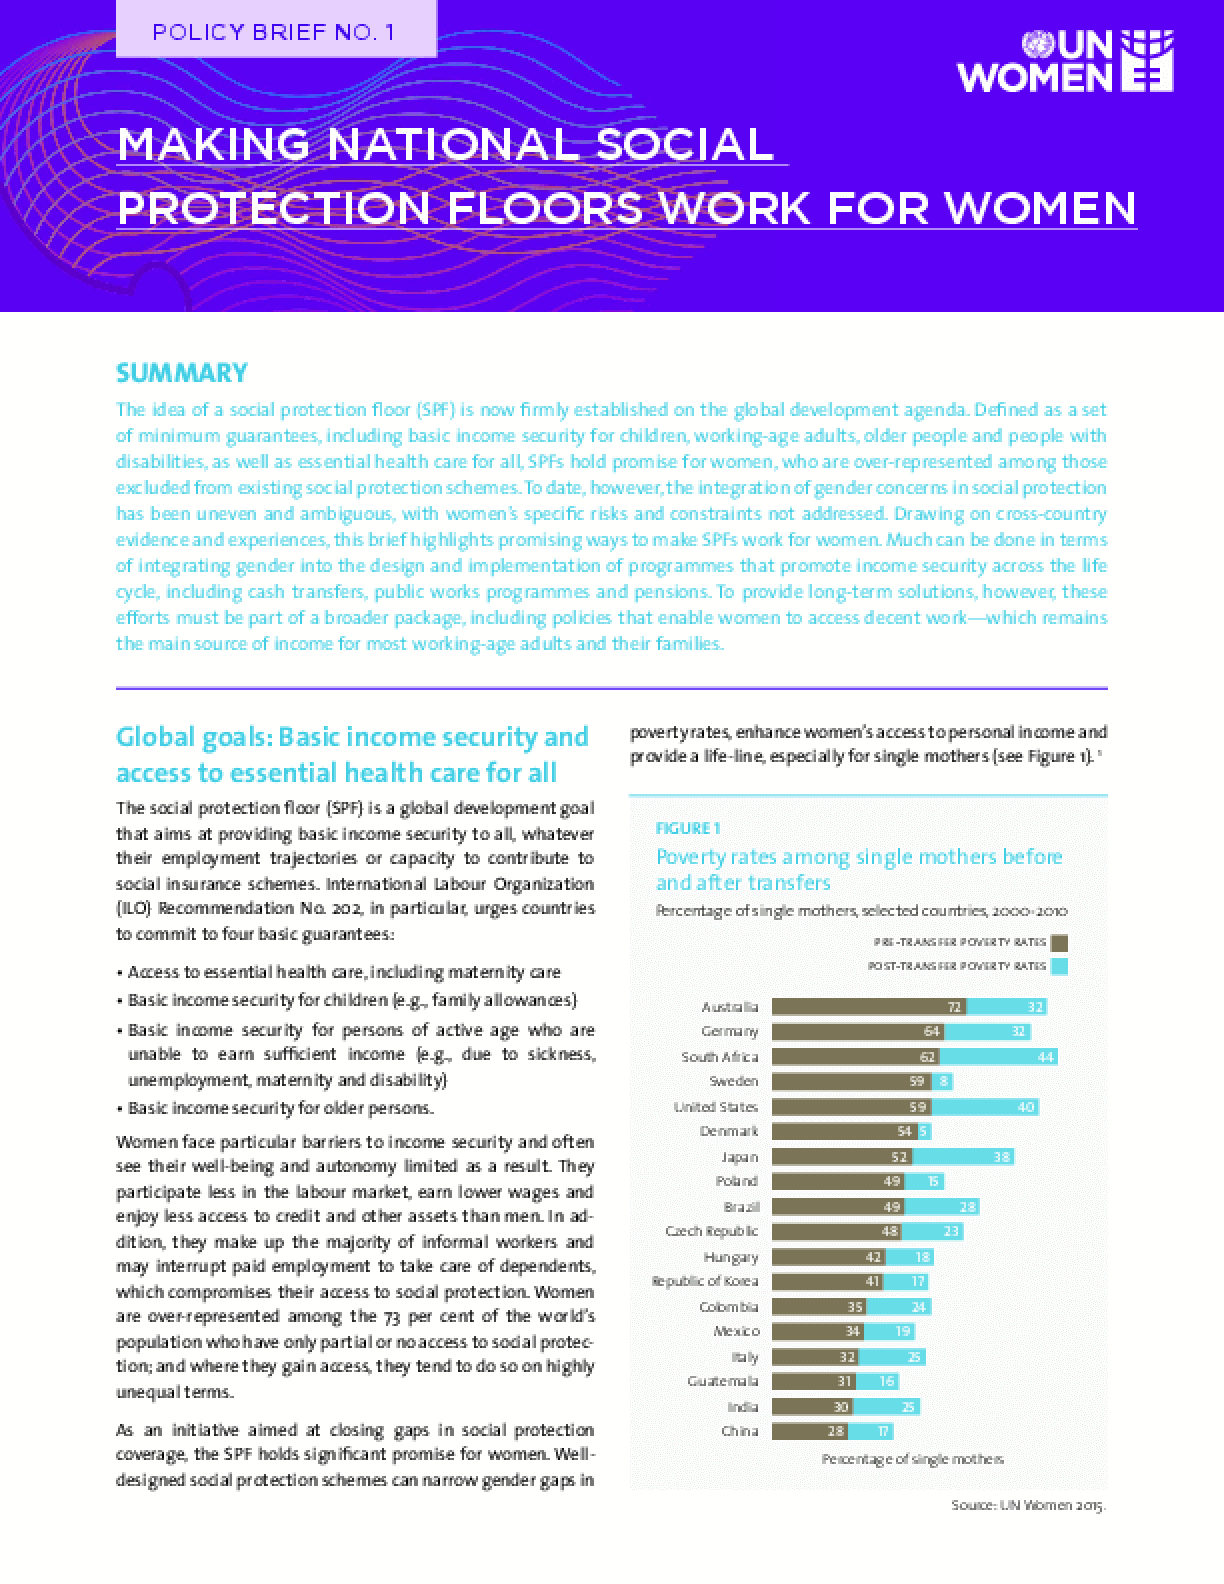 Making National Social Protection Floors Work for Women